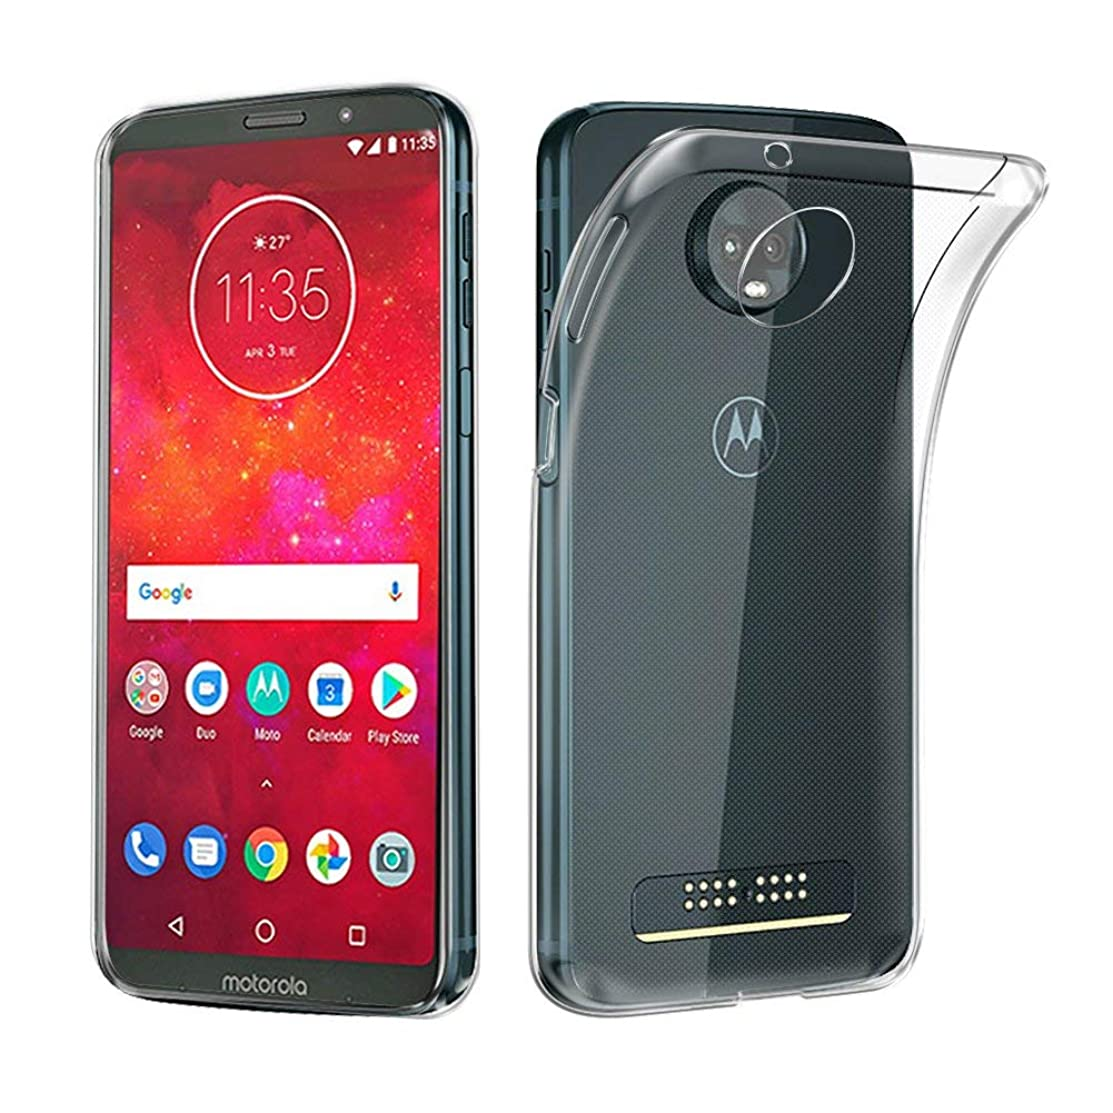 RKINC Case for?Moto Z3 Play?TPU Cover Transparent Ultra Thin, Lightweight, Flexible and Scratch Resistant Silicone Case for?Motorola Moto Z3 Play